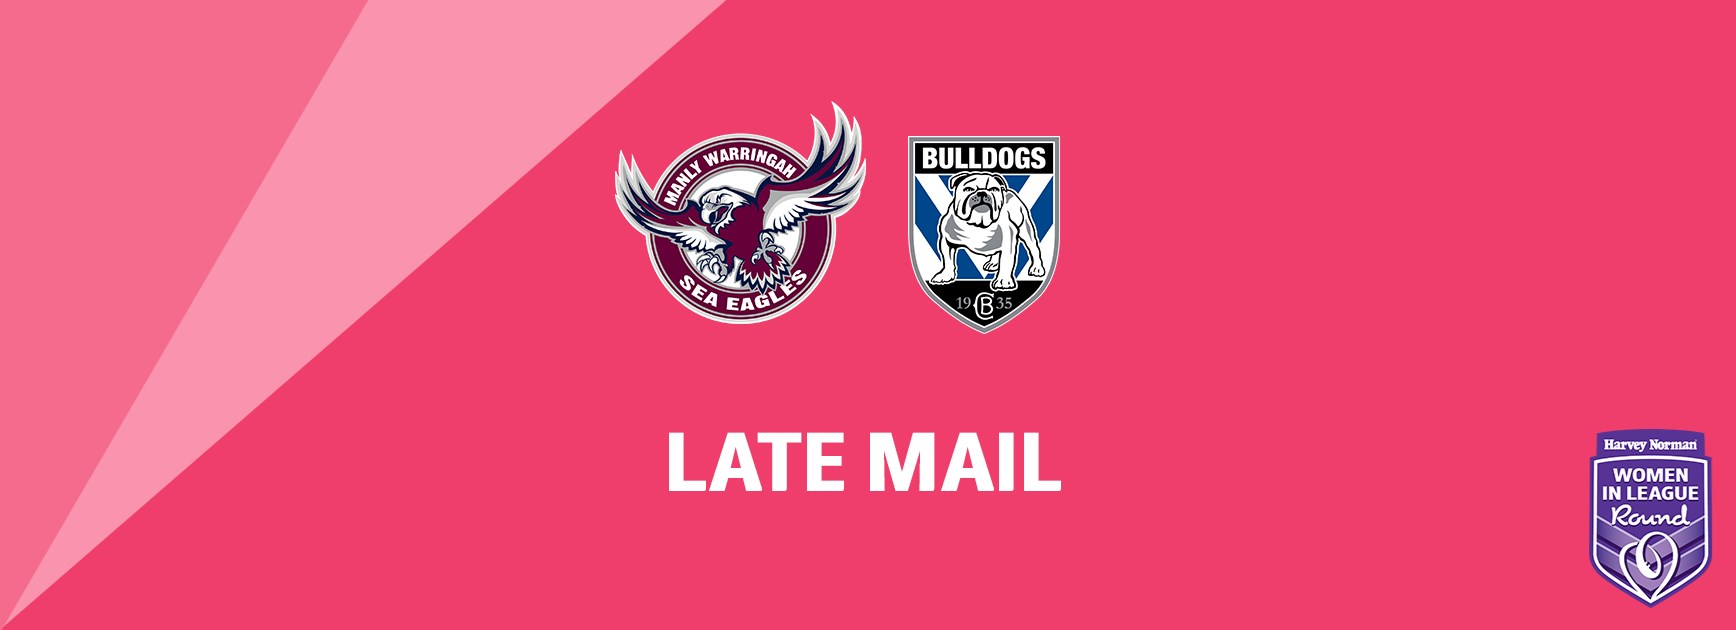 NRL Late Mail - Round 22